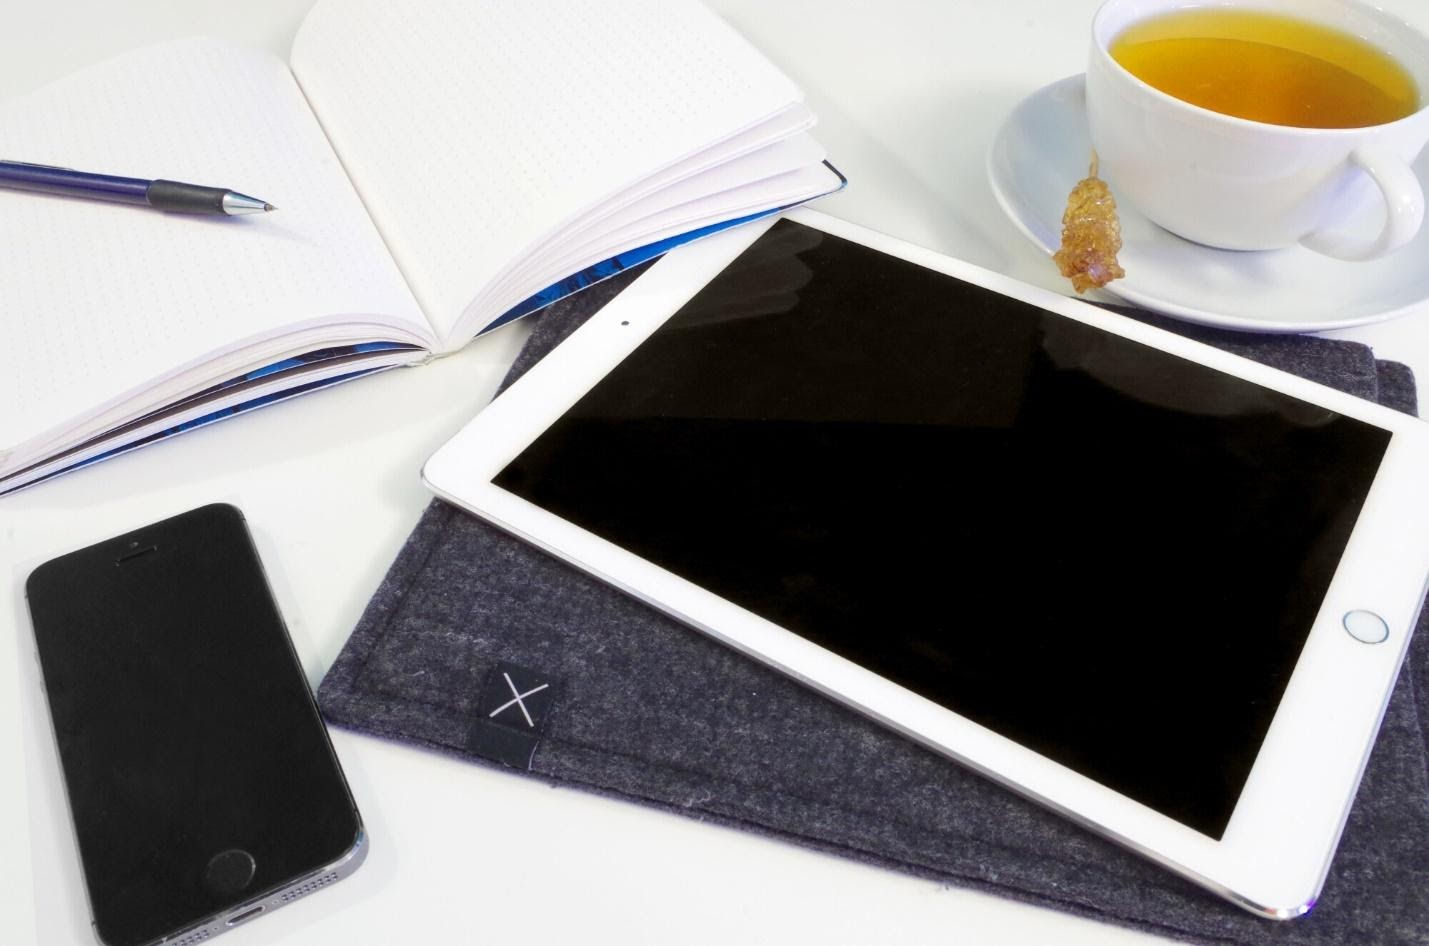 Best iPad Productivity Apps That You Should Know About